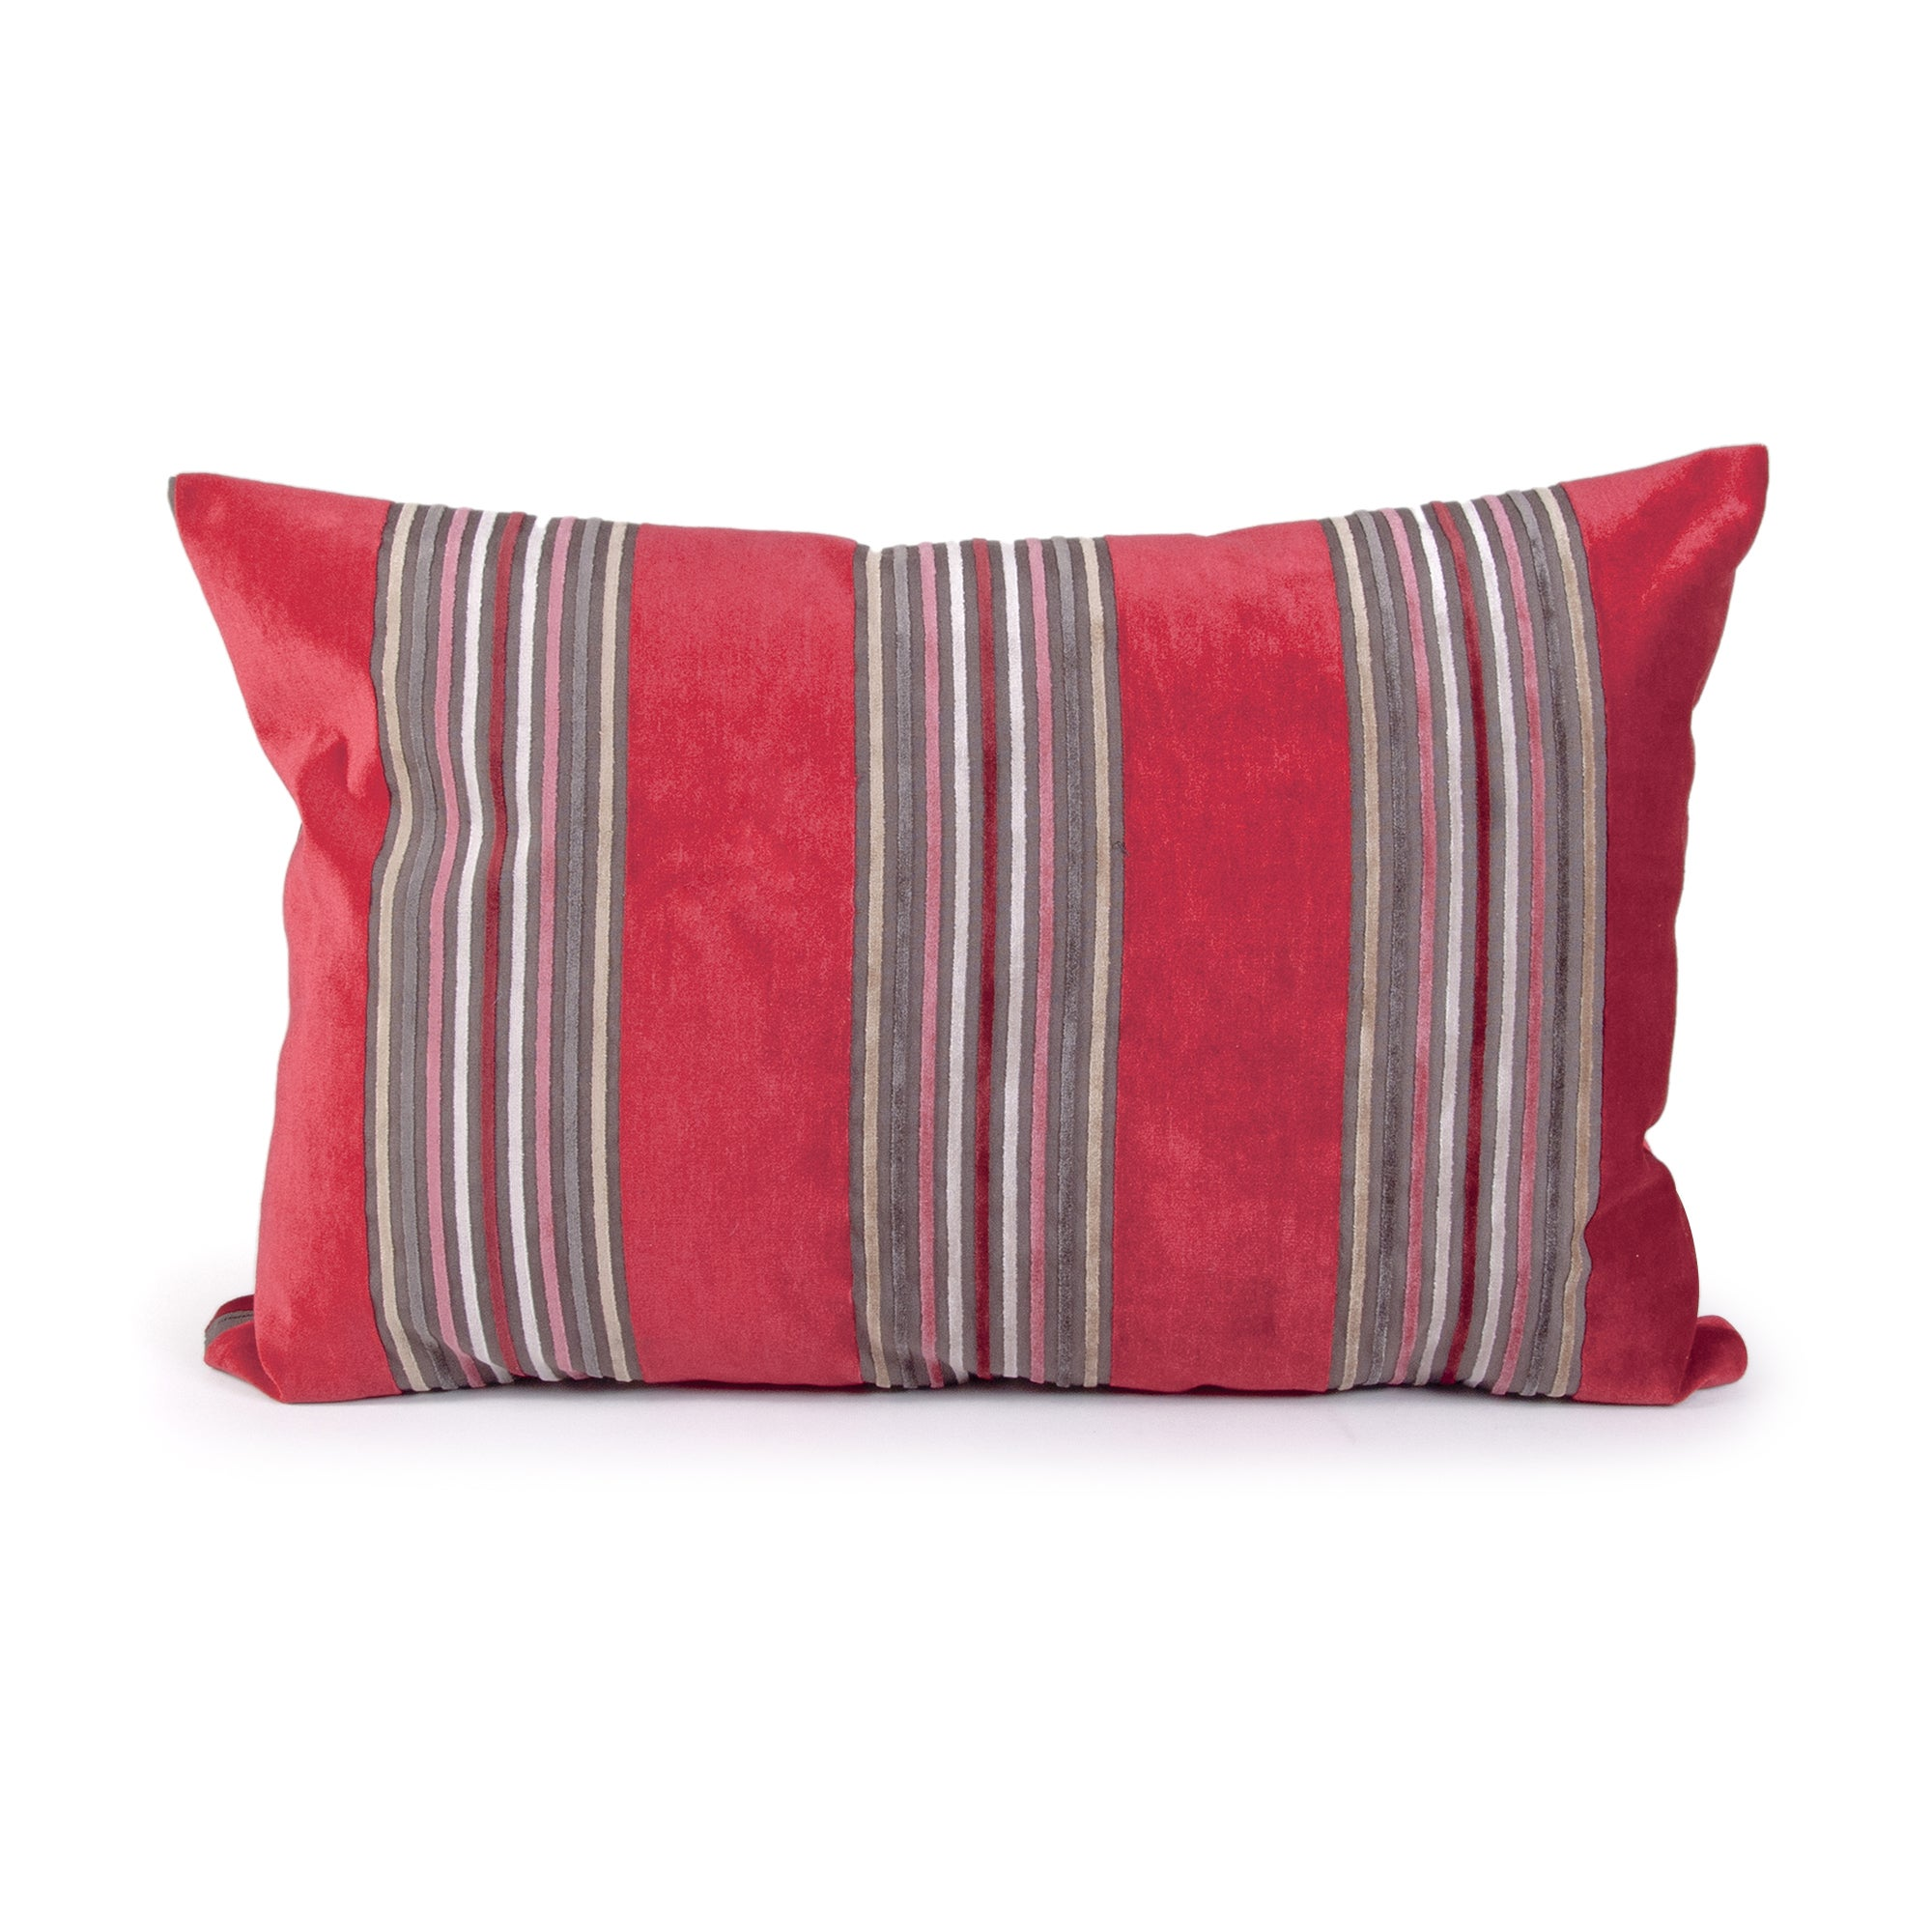 Capri Stripe Boudoir Cushion